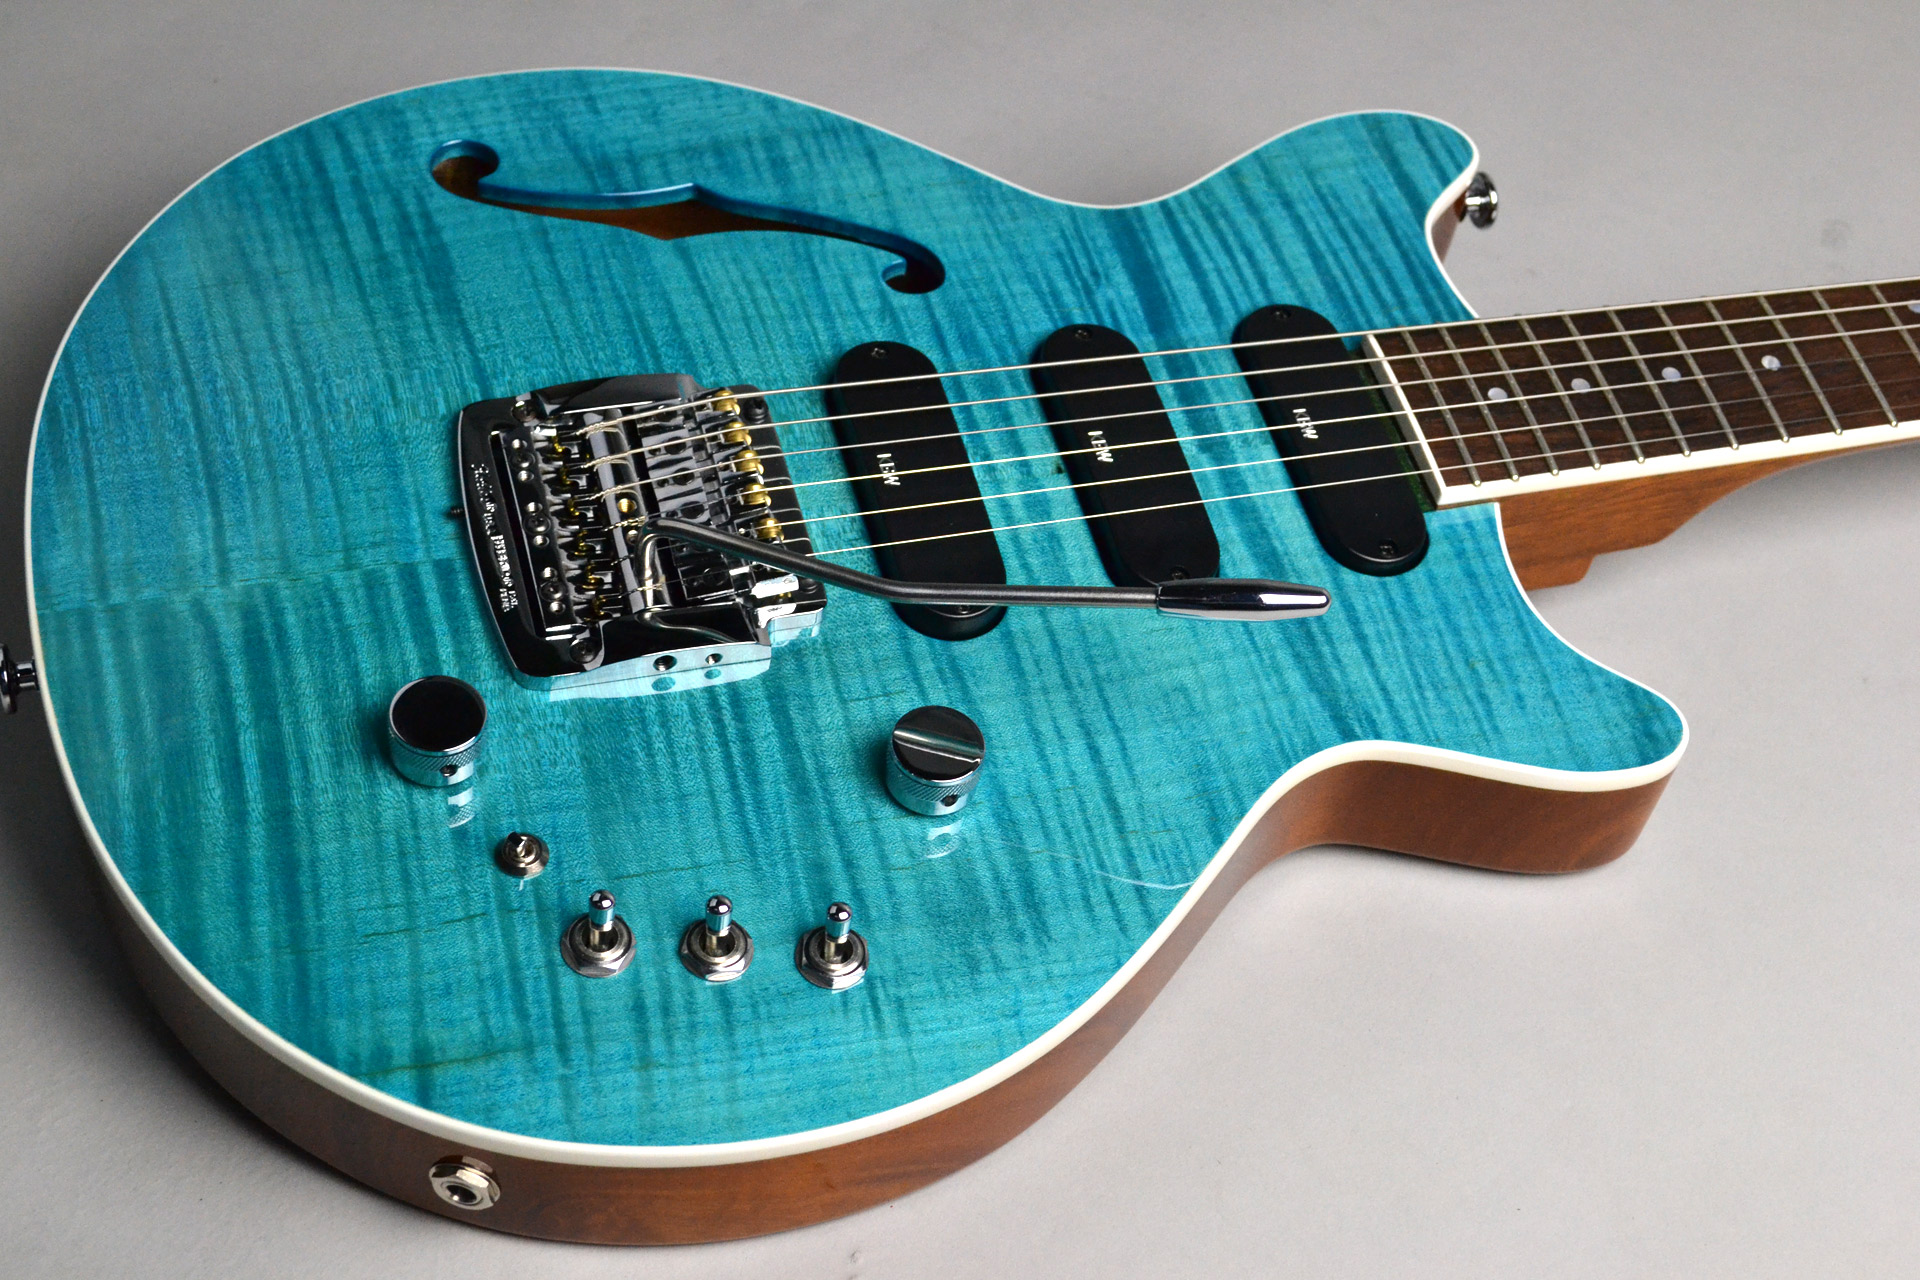 Kz One Semi-Hollow 3S23 Kahler Turquoise Blue【楽器フェアモデル】のボディトップ-アップ画像